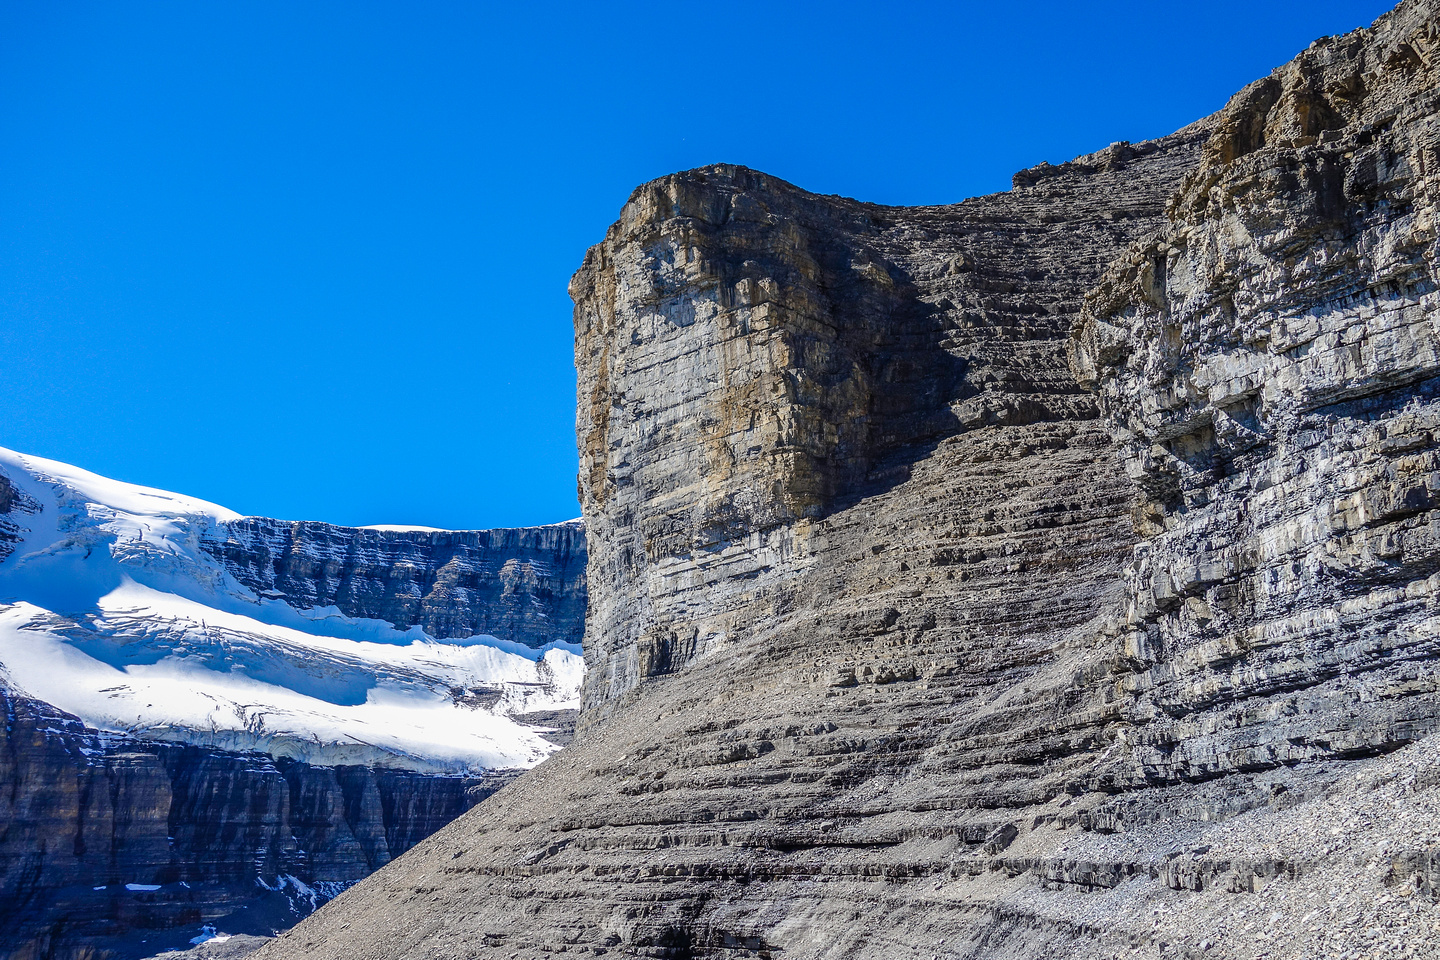 """The incredible """"Greek Amphitheater"""" is the 2nd chink in the armor guarding Amery's summit."""